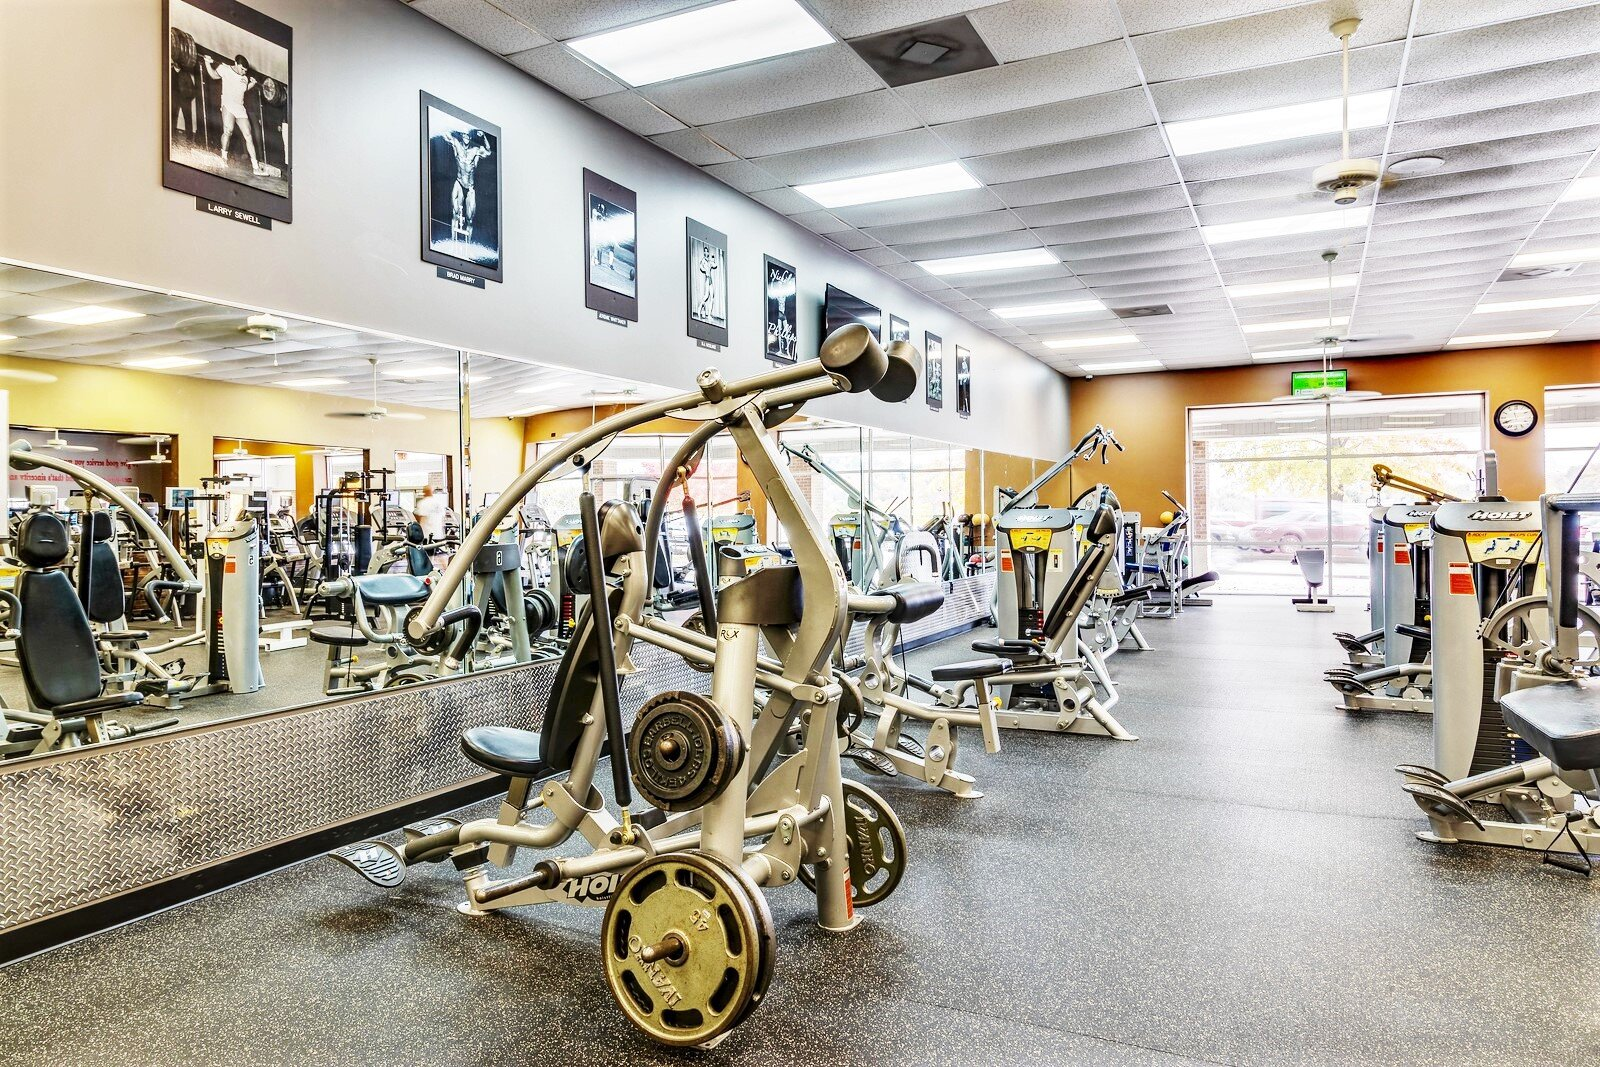 Harvey S Gym Columbia Tennessee 2020 Real Estate Photographer Pro